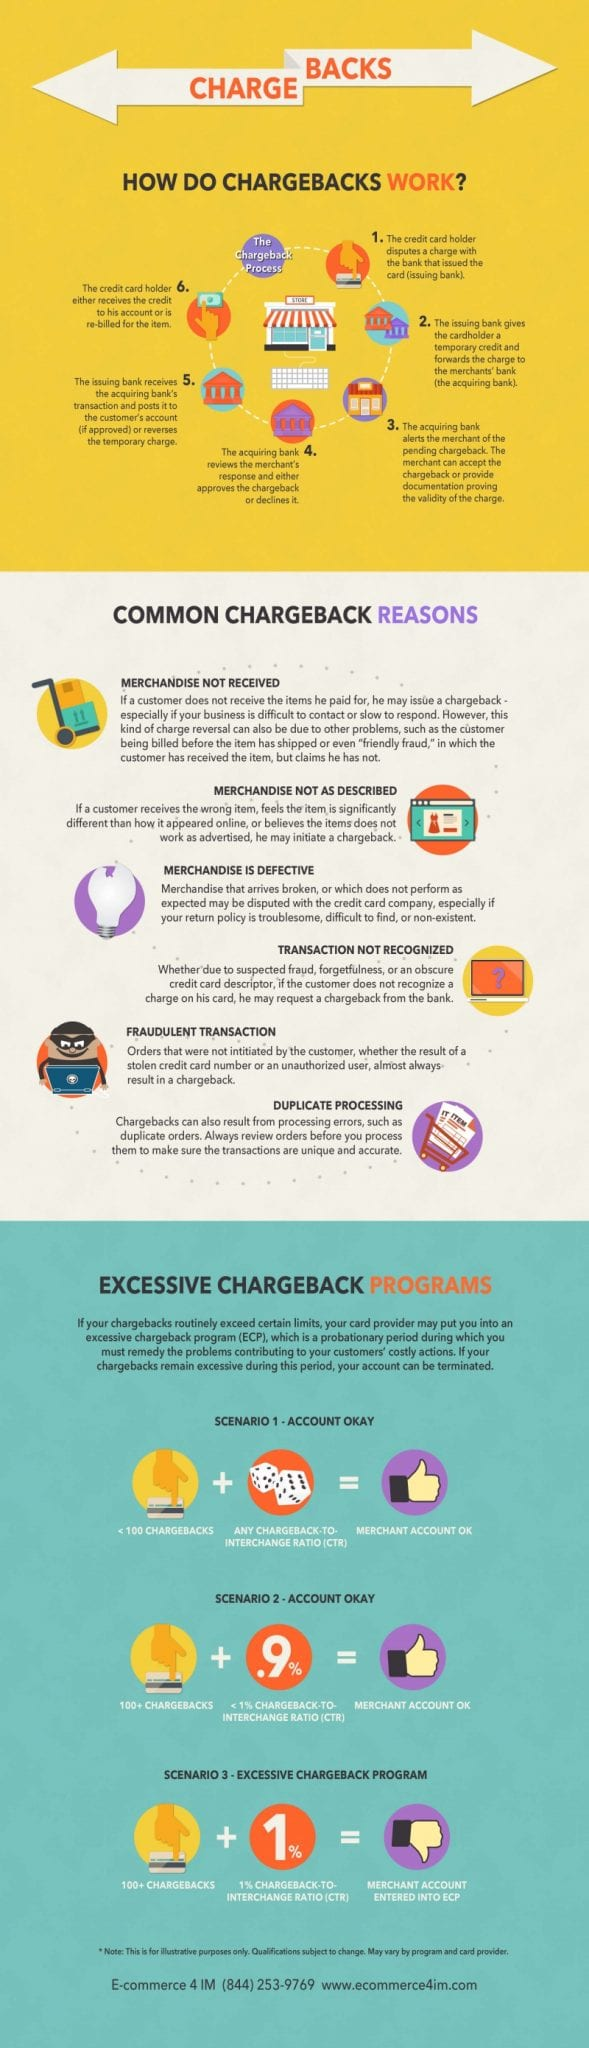 Chargebacks | Infographic | E-Commerce 4 IM